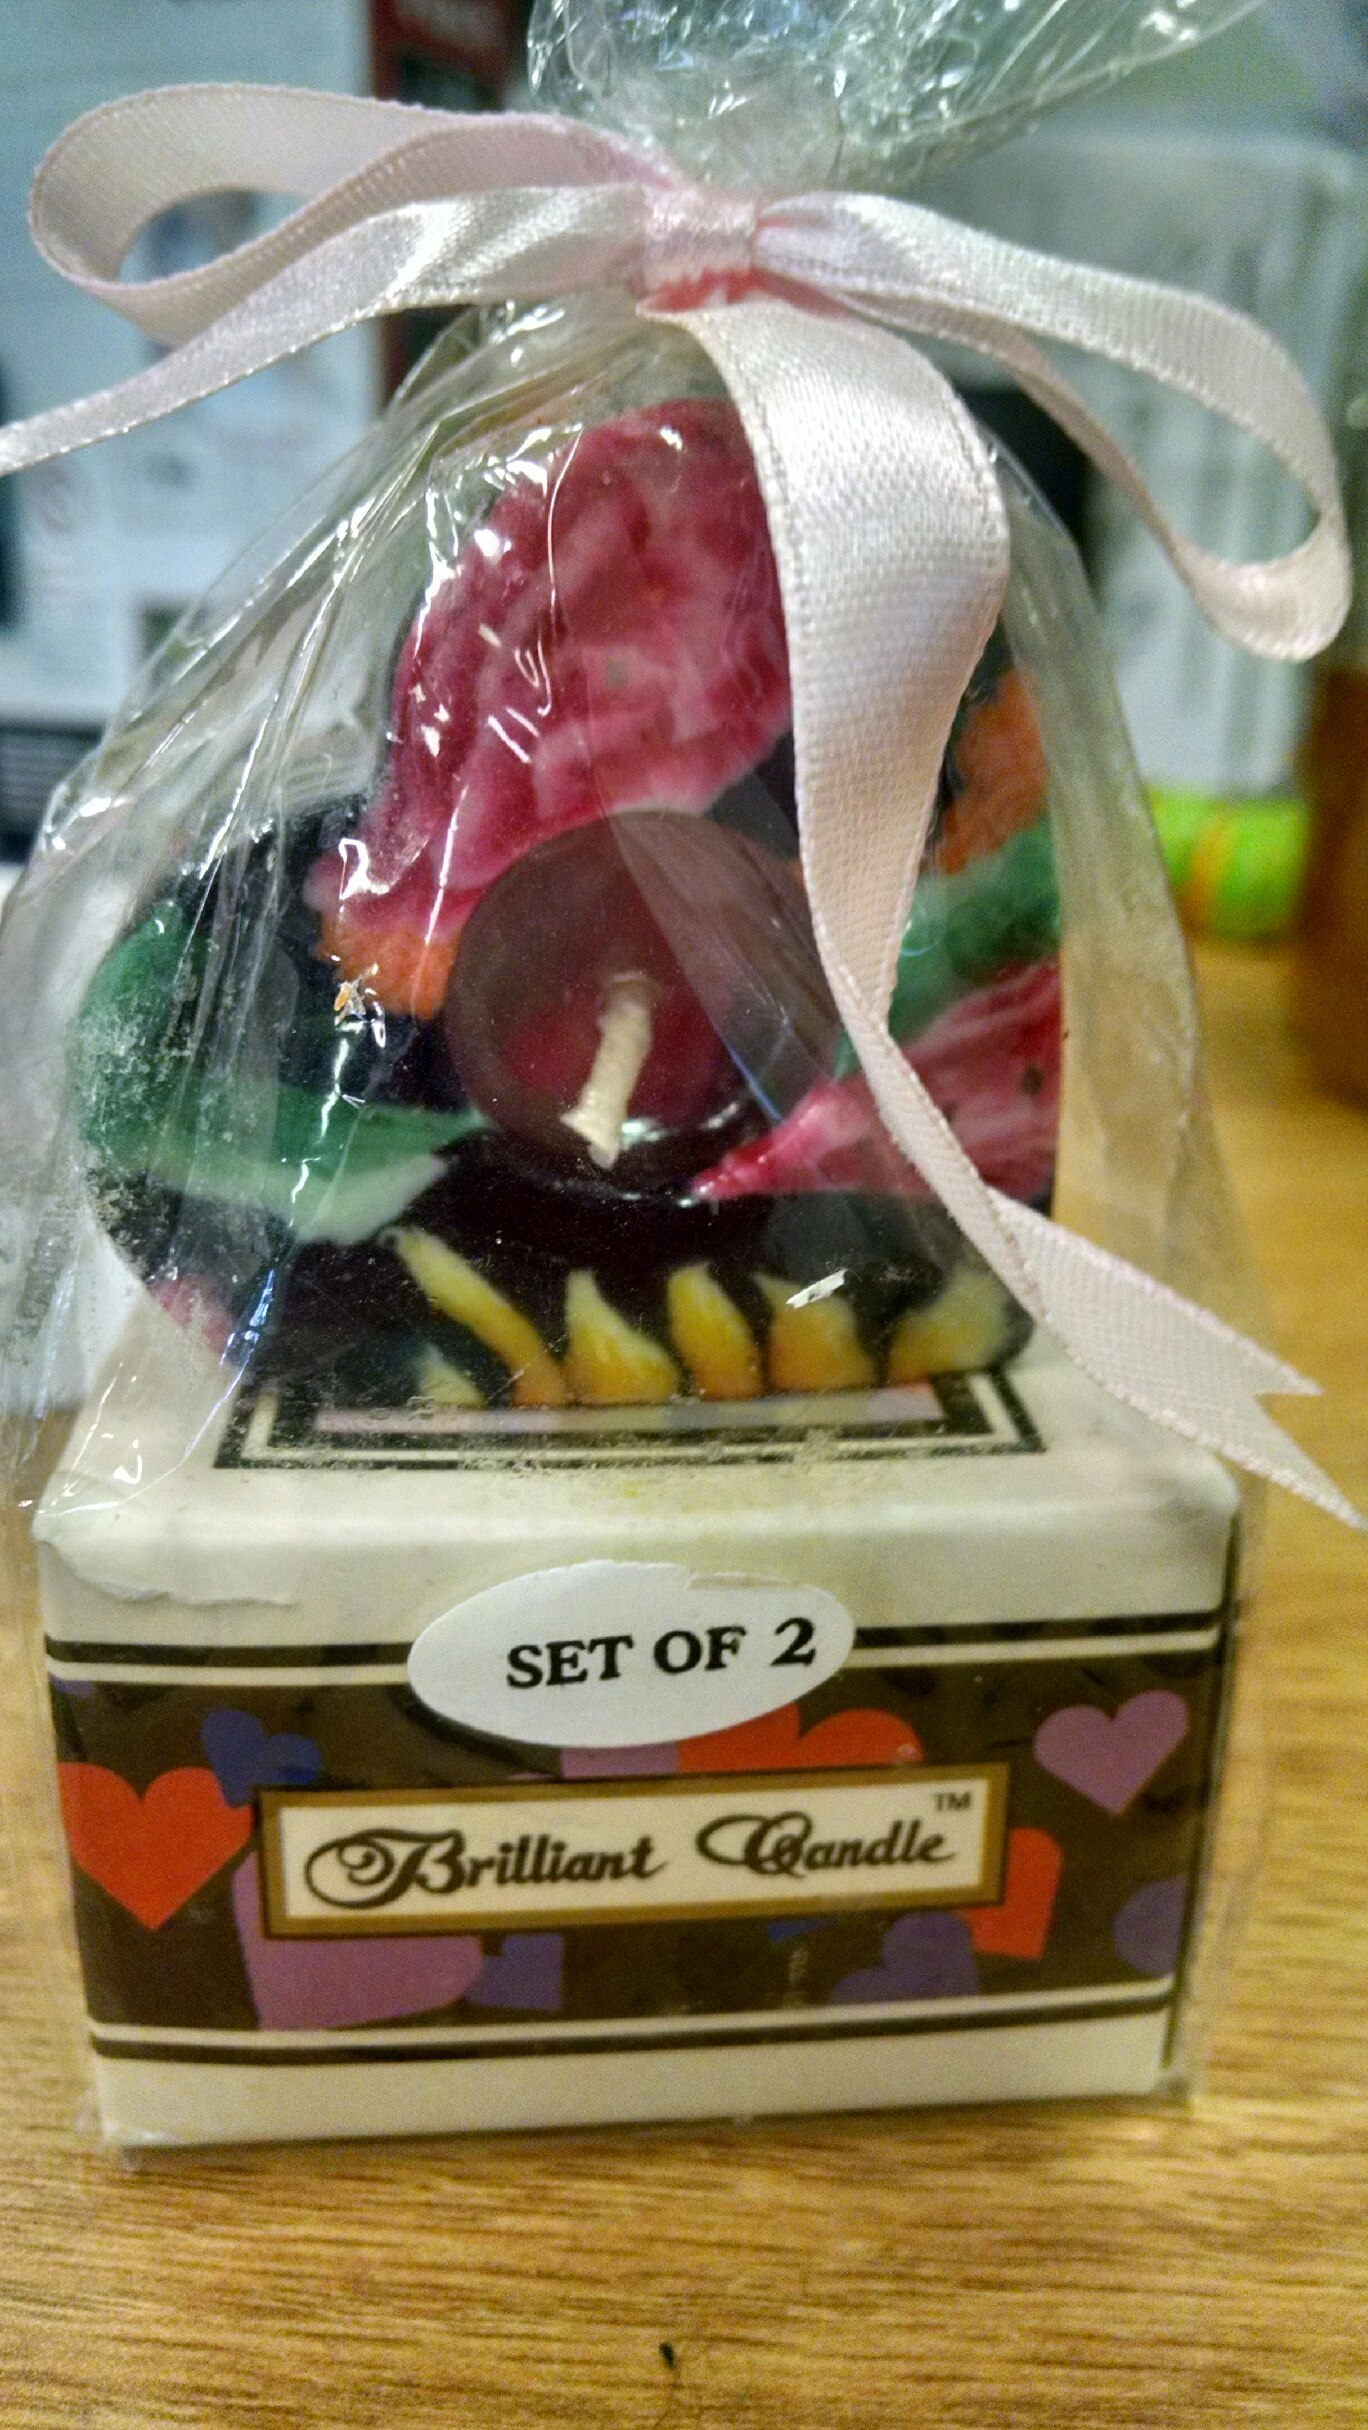 Brilliant Candle - 2 pk. set - veneer heart-shaped